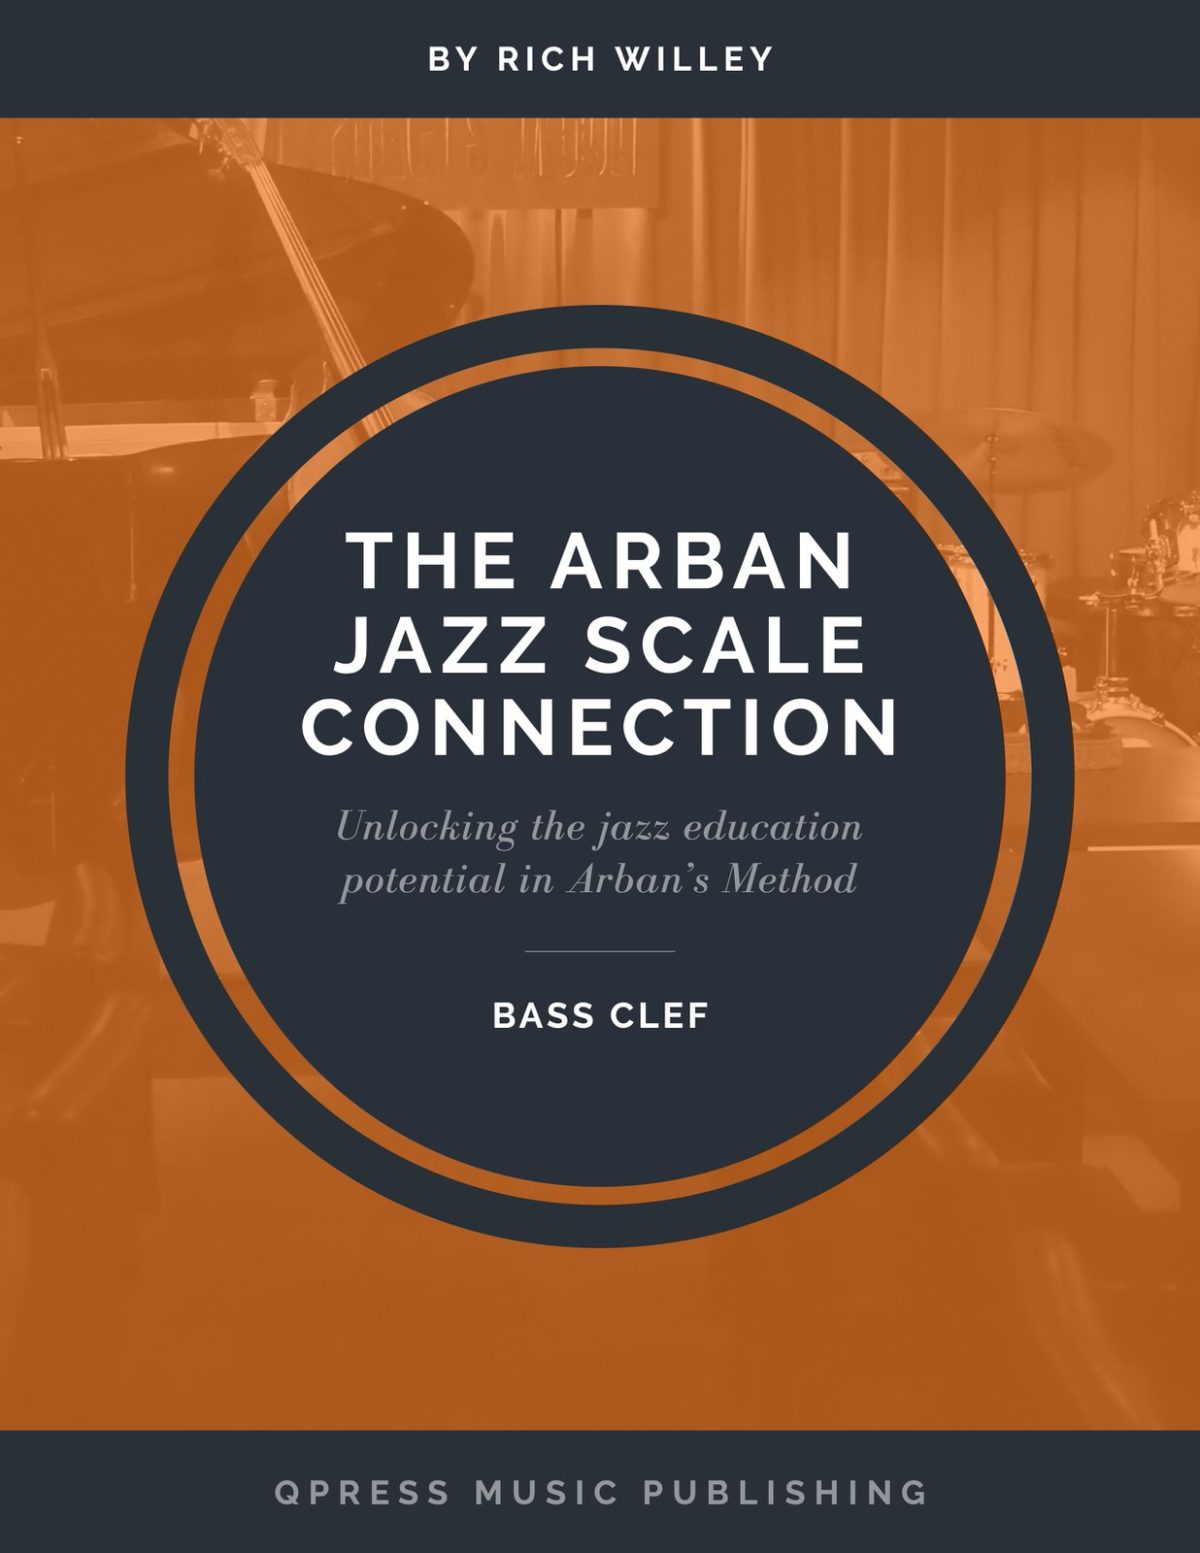 Willey, Arbans Jazz Scale Connection (Bass Clef)-p01